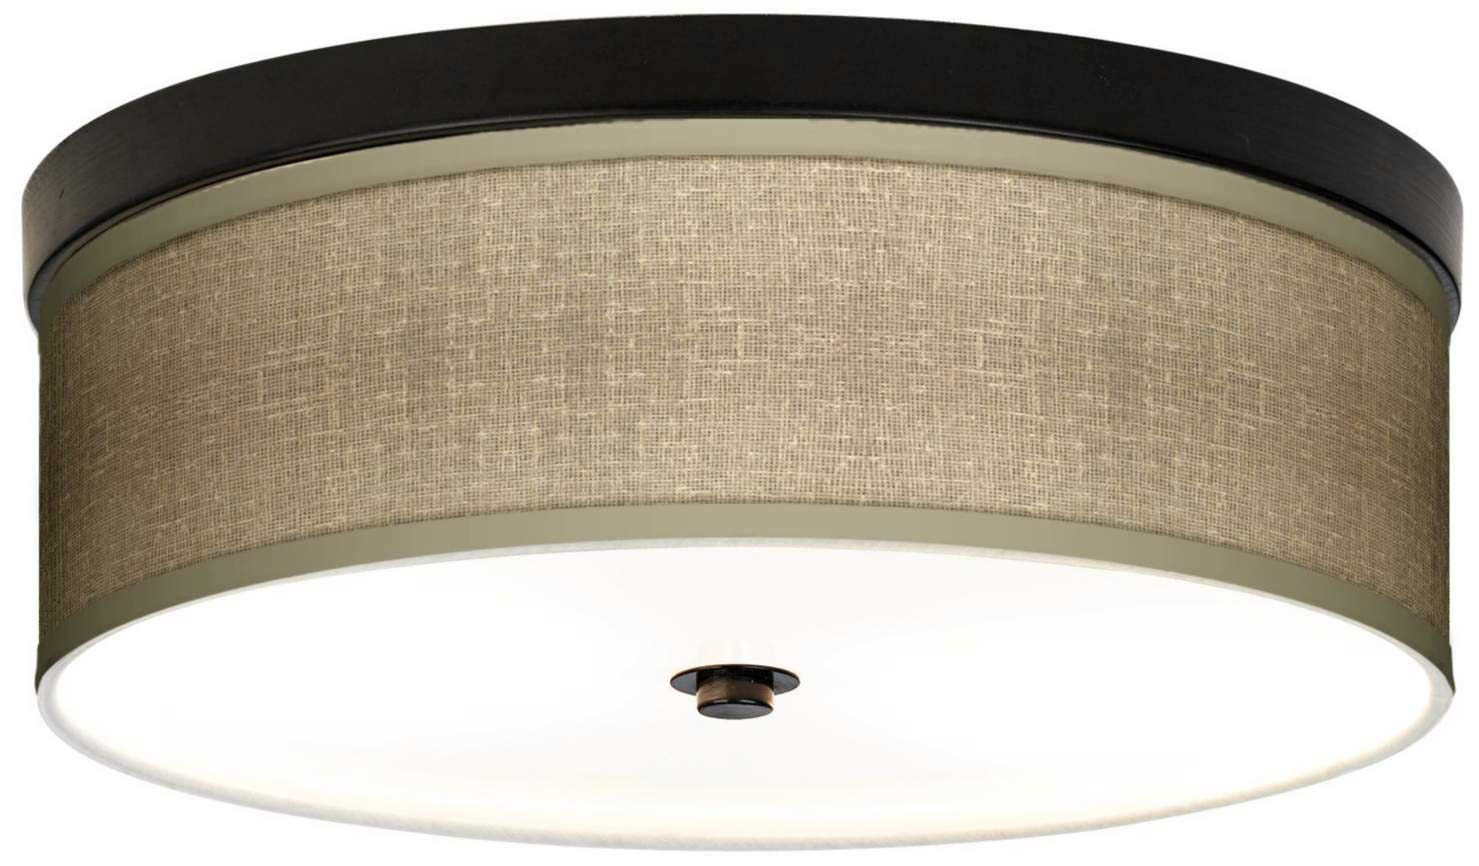 12 beautiful flush mount ceiling lights tidbits twine